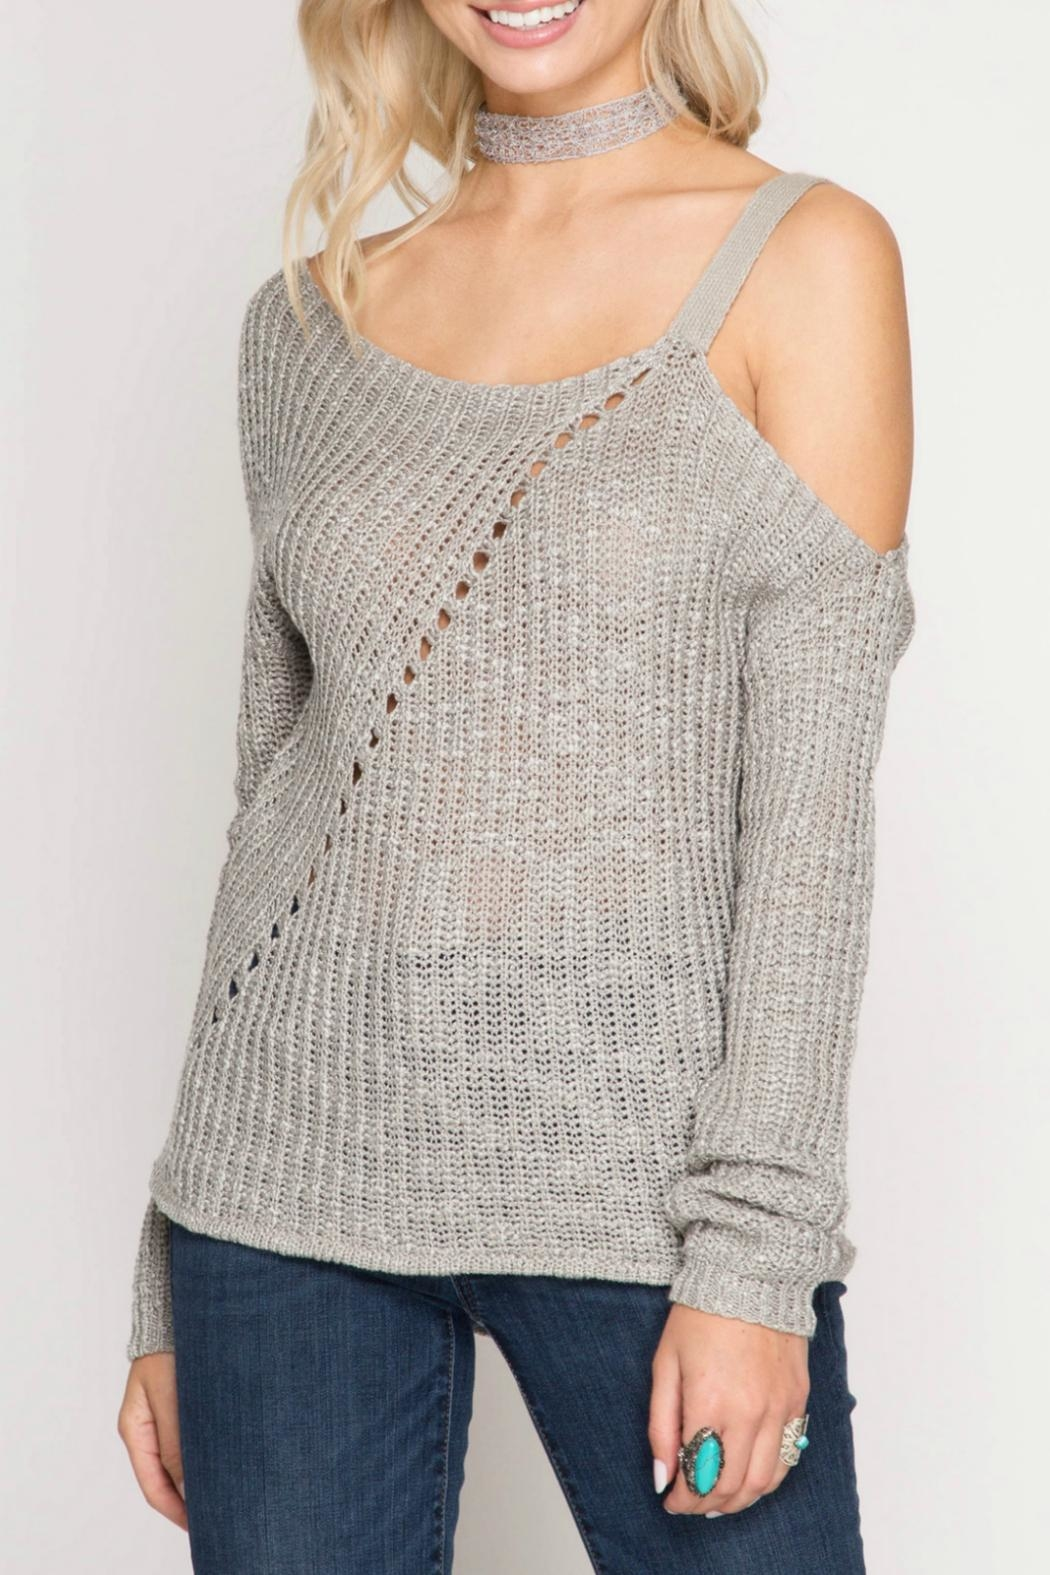 She + Sky Slub Knit Sweater - Main Image